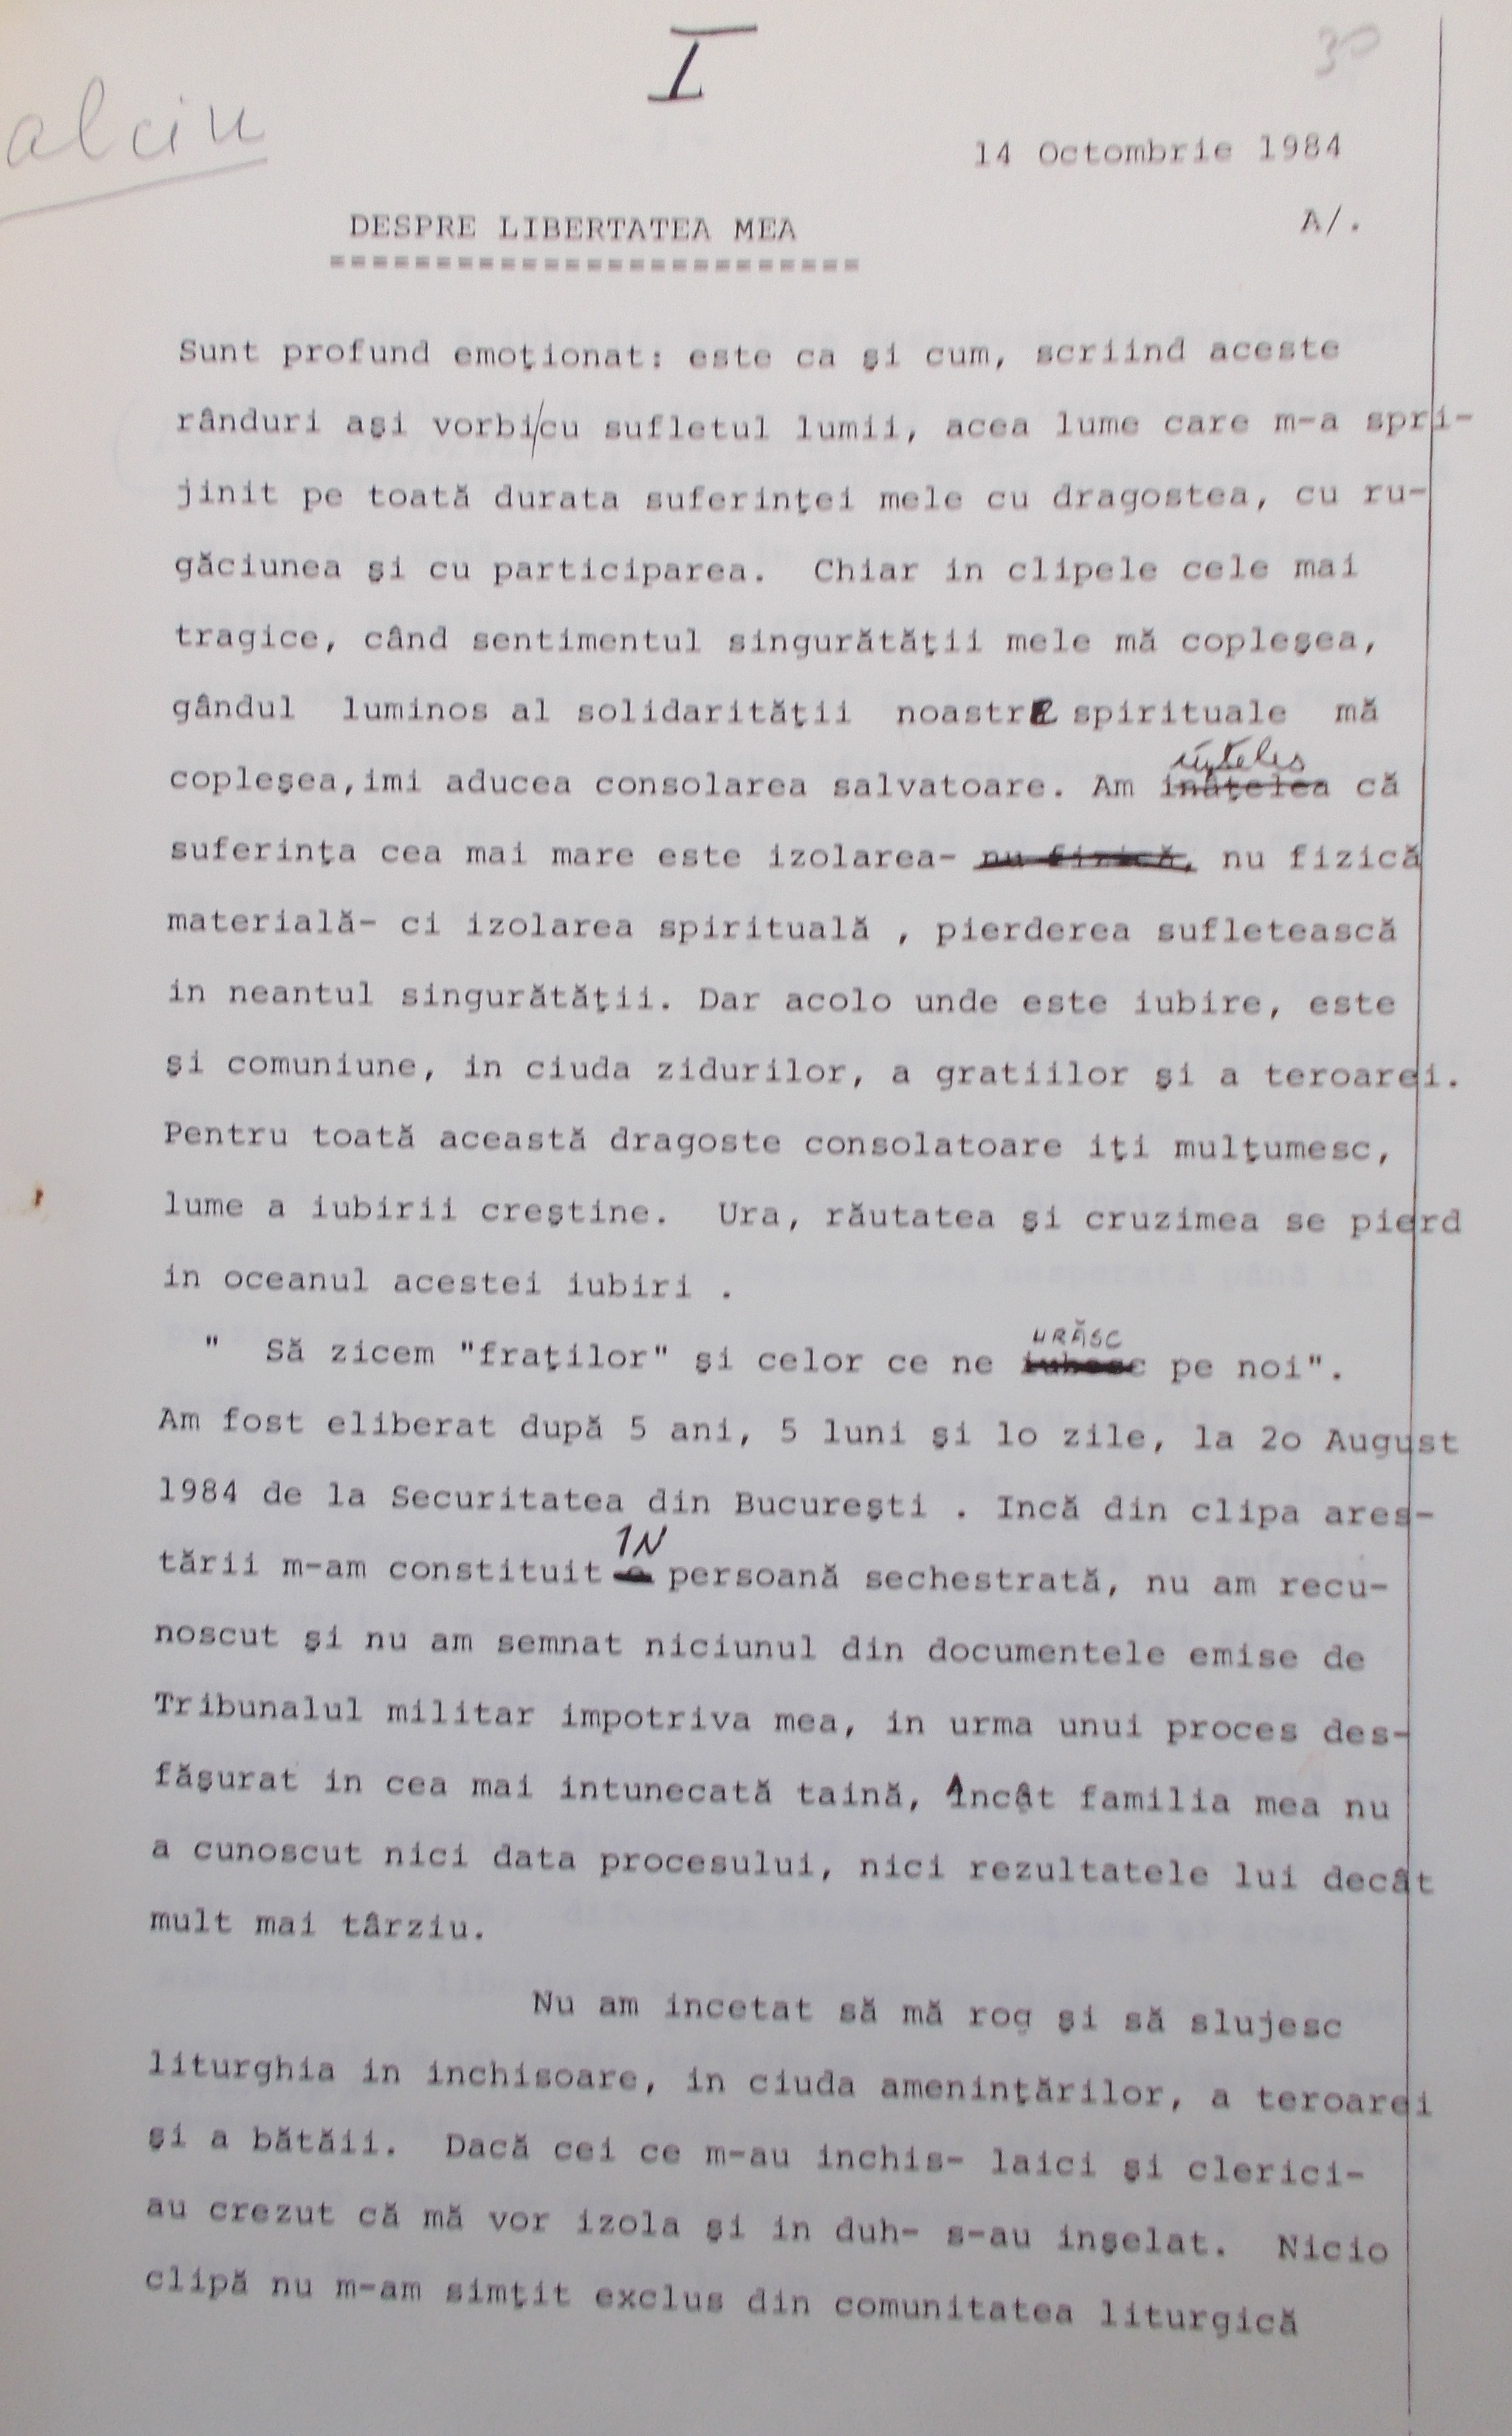 The first page of the letter to RFE sent by Calciu–Dumitreasa in October 1984